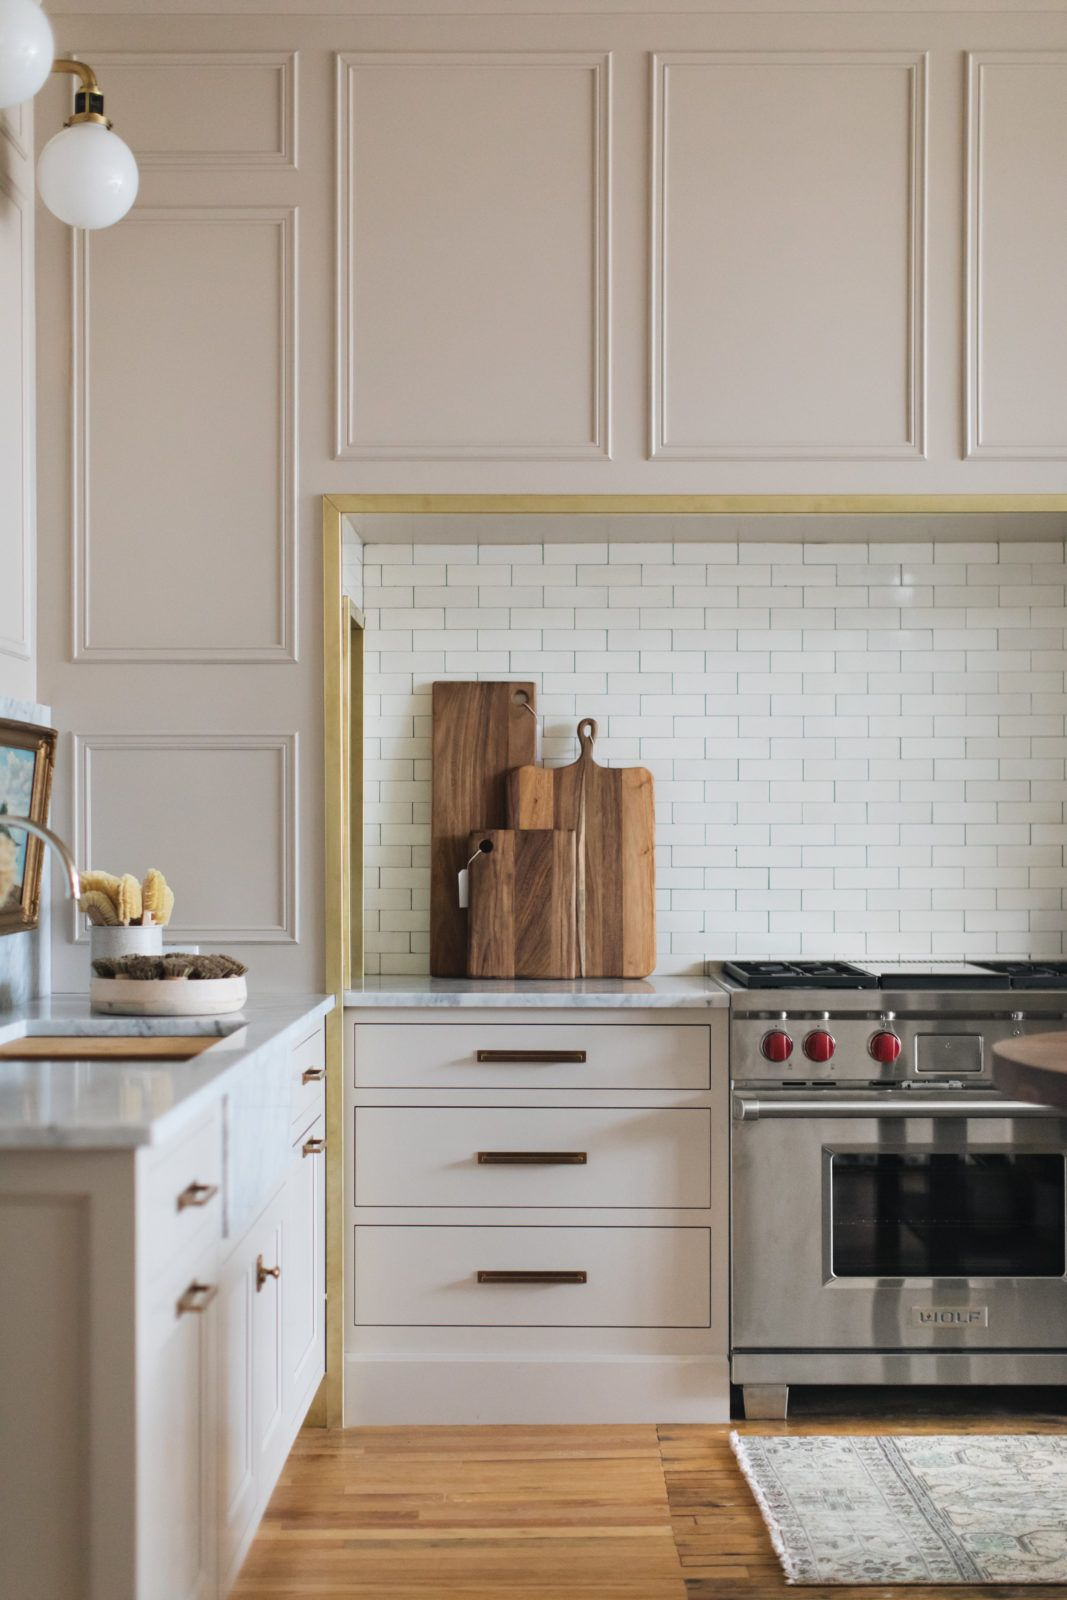 The Best Mushroom Paint Colors For Your Kitchen The Identite Collective Beige Kitchen Beige Kitchen Cabinets Kitchen Remodel